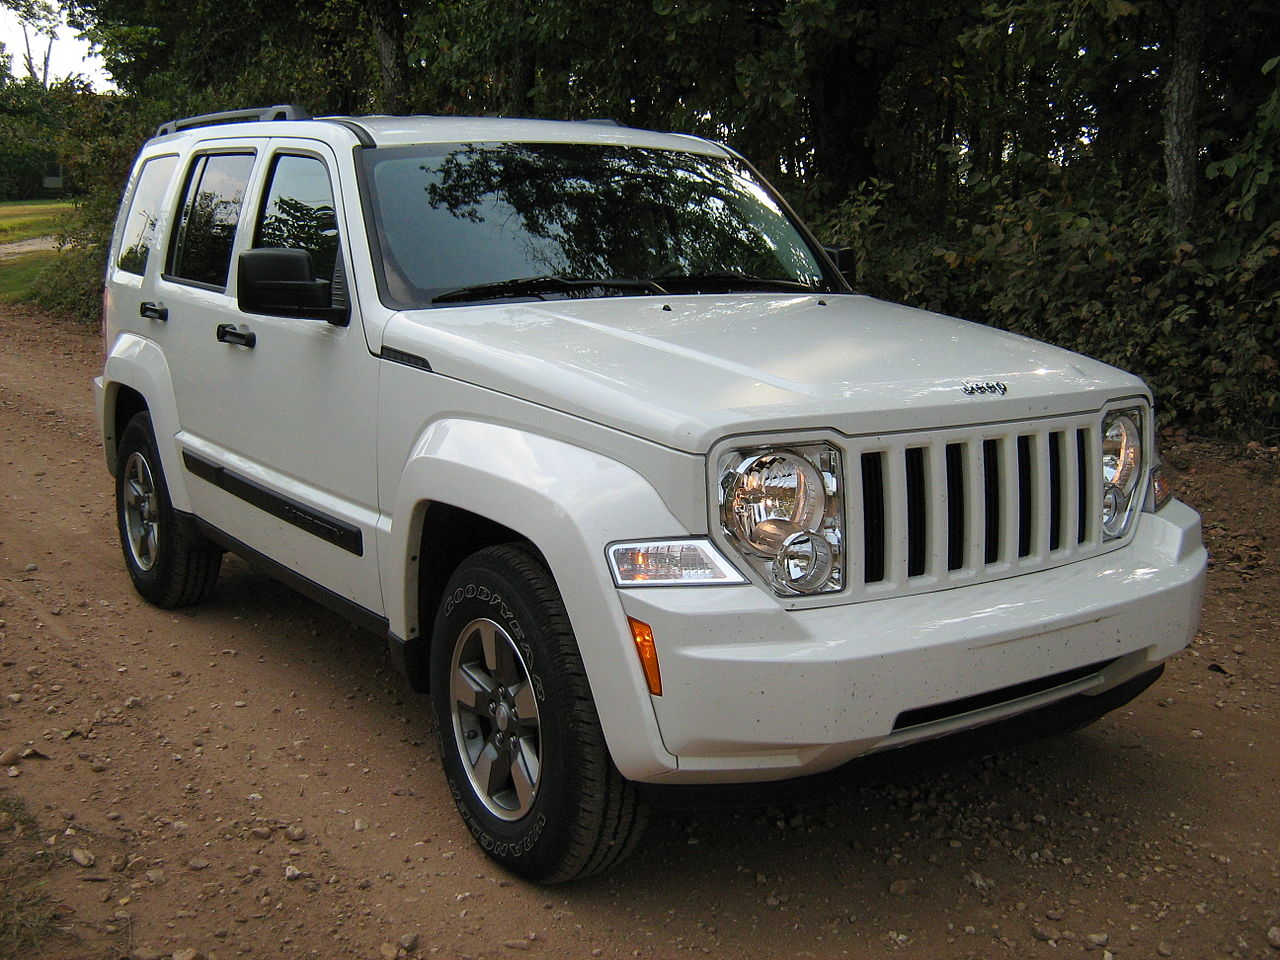 Jeep Liberty Used Car Value